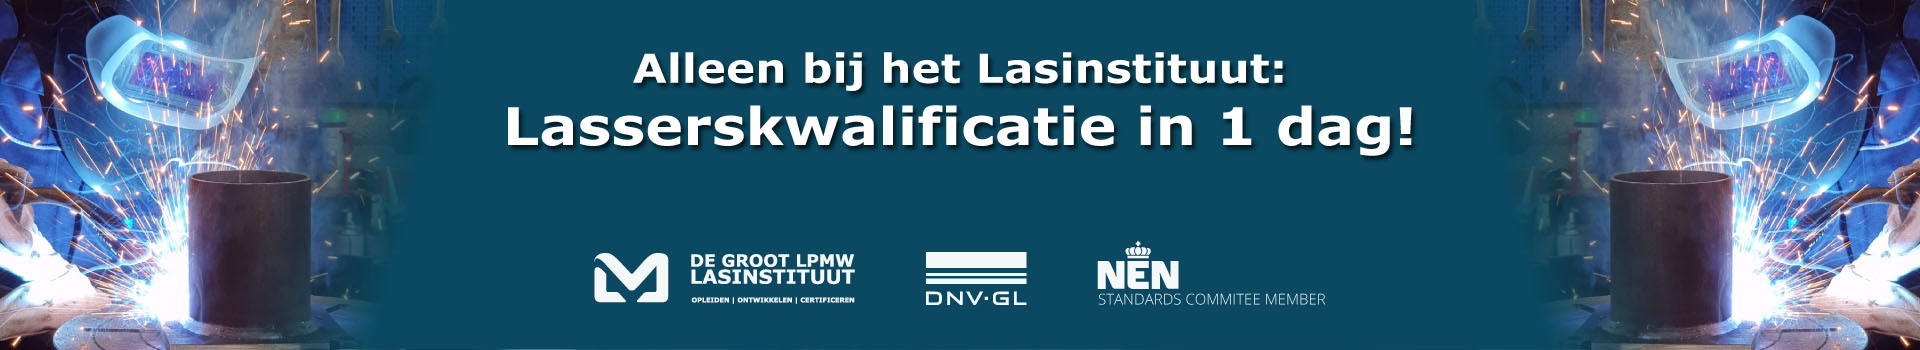 Banner website Lasserskwalificatie in 1 dag